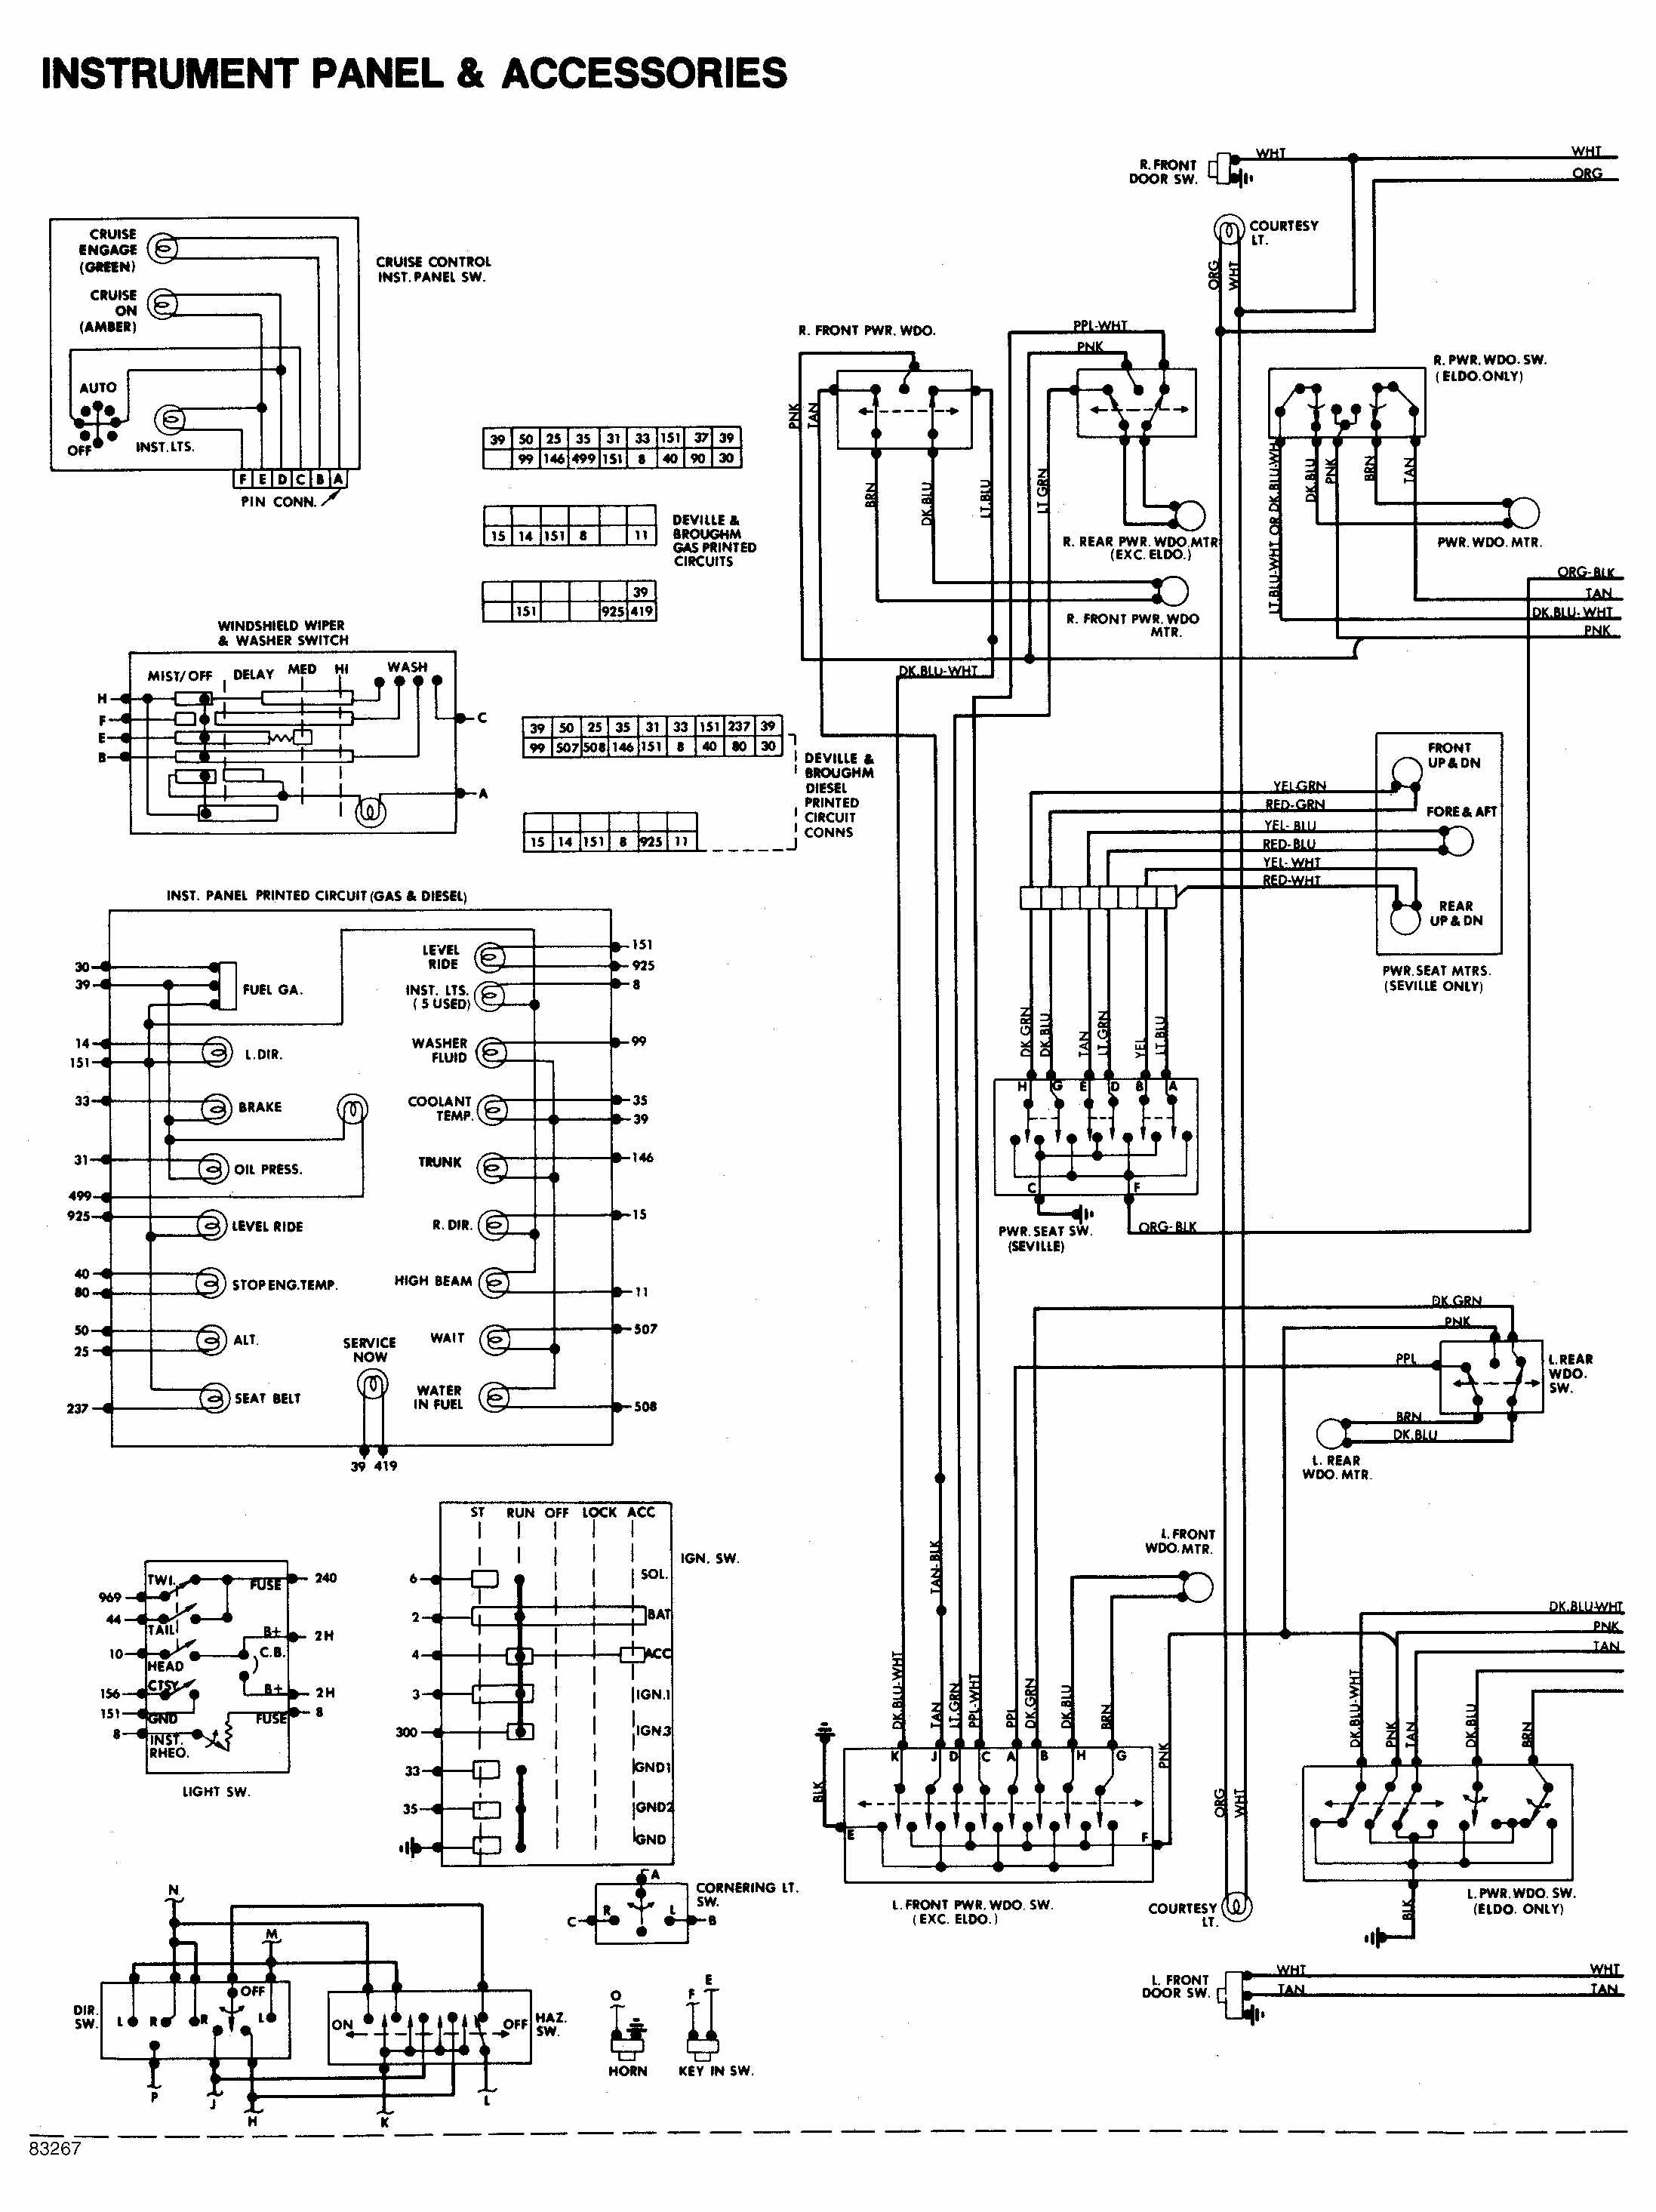 Gm Wire Harness Diagram Wiring Online Circuit Board Schematics Further Electrical Drawing Dash Diagrams Data Gauge Cluster